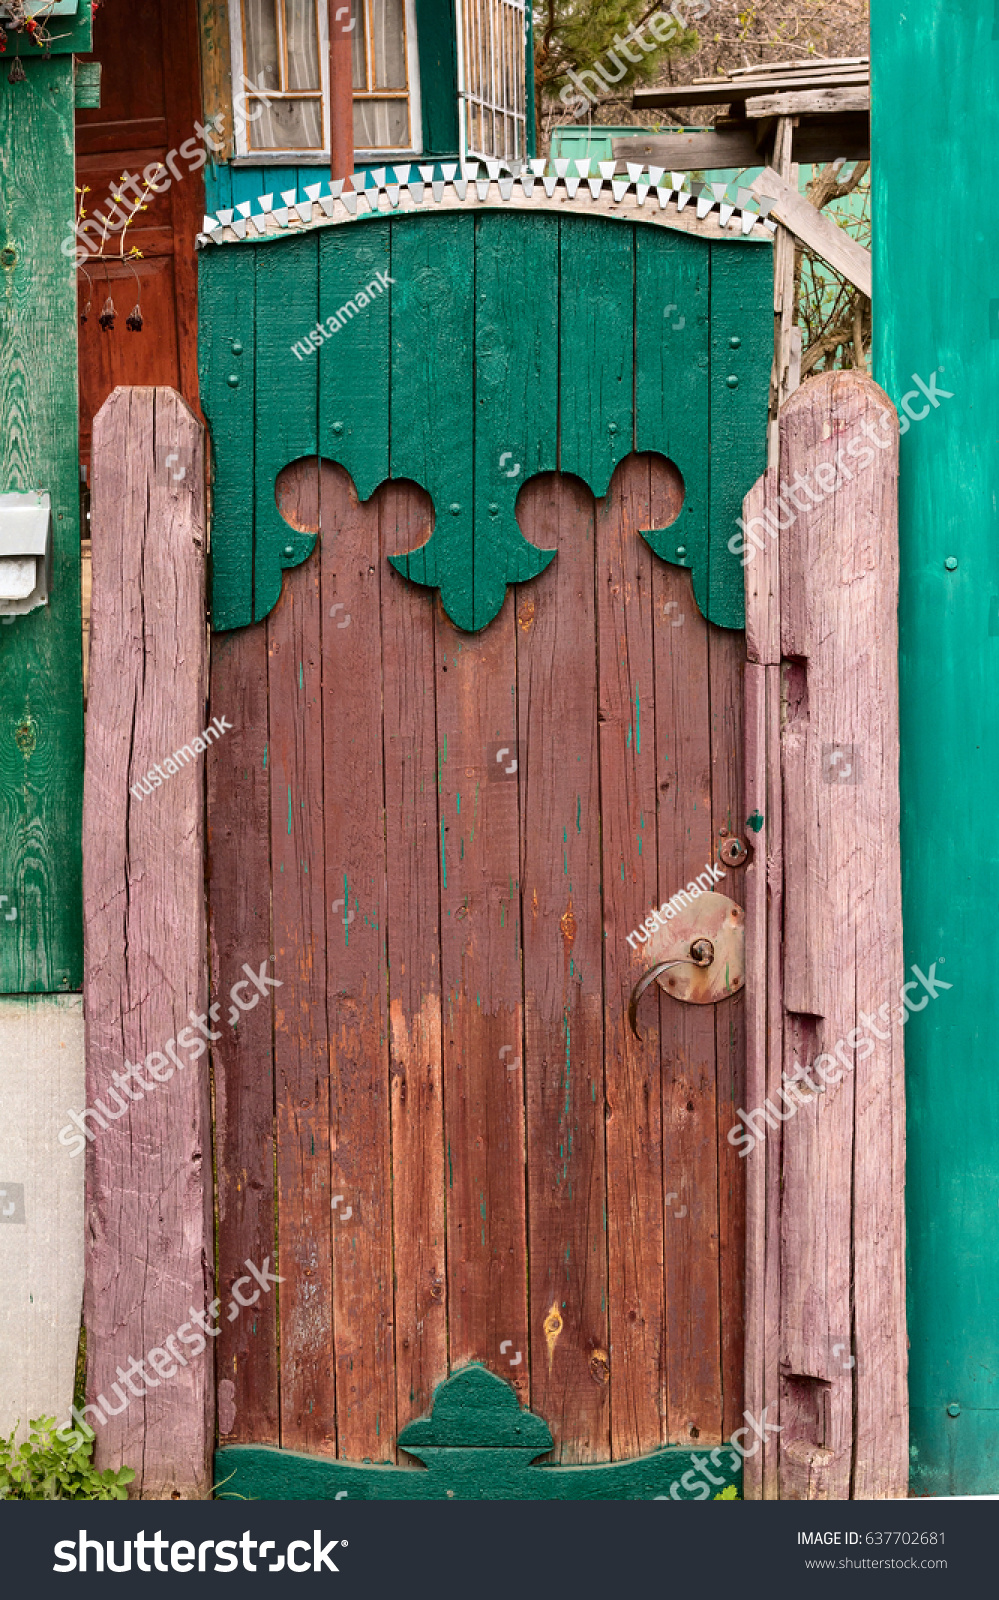 Old Ancient Wicket Door With An Old Fence Rustic House : wicket door kit - pezcame.com